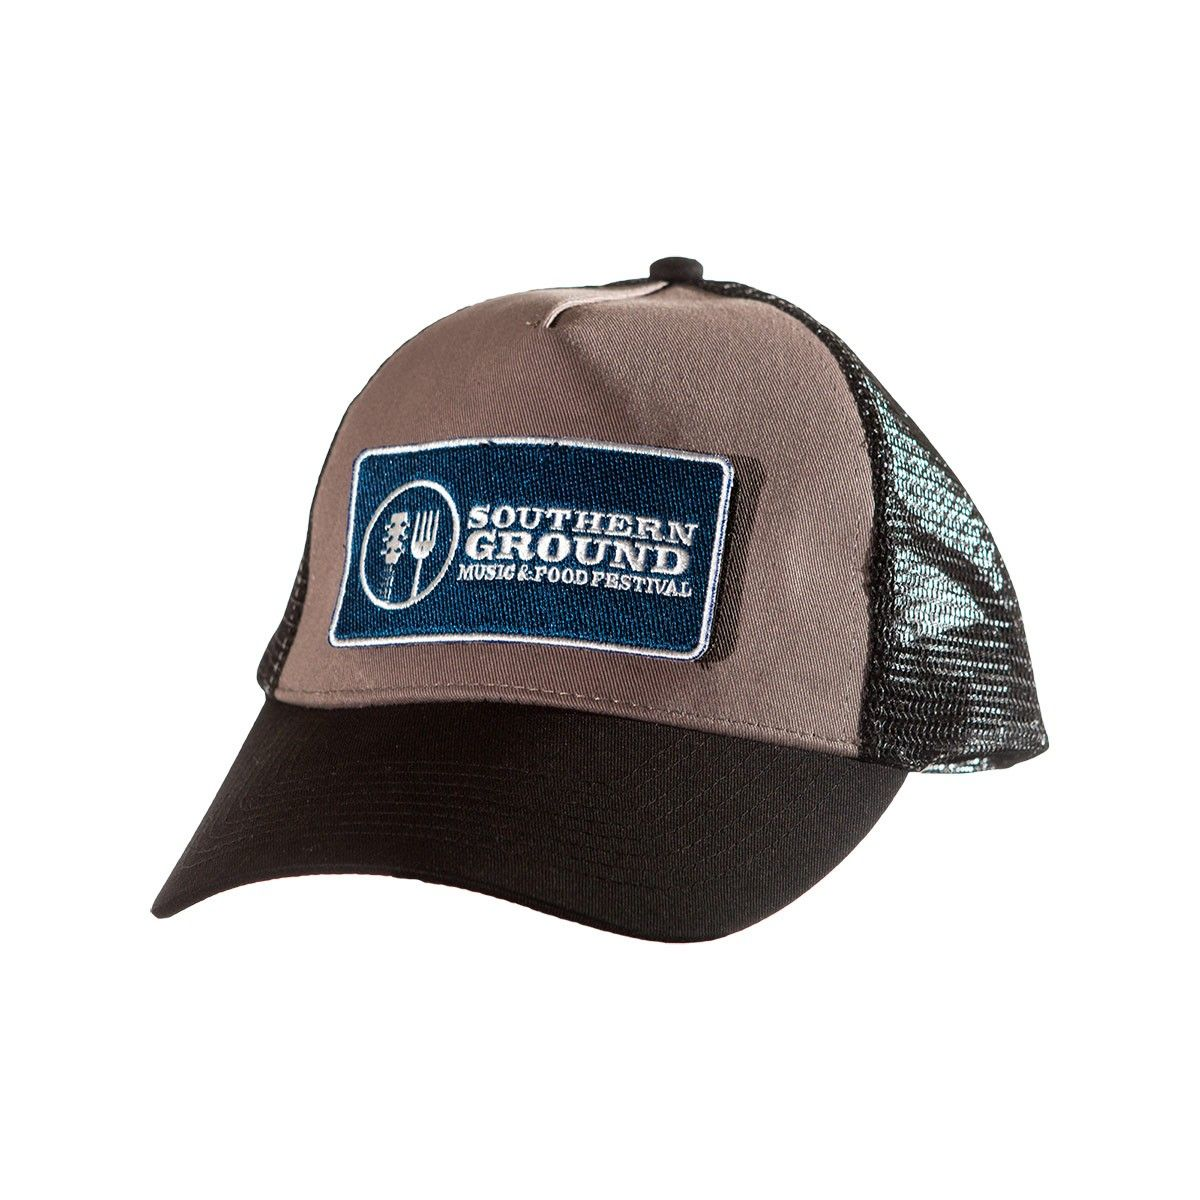 Velcro Trucker Hat with Southern Ground Music   Food Festival Patch ... 67a424a1e4d